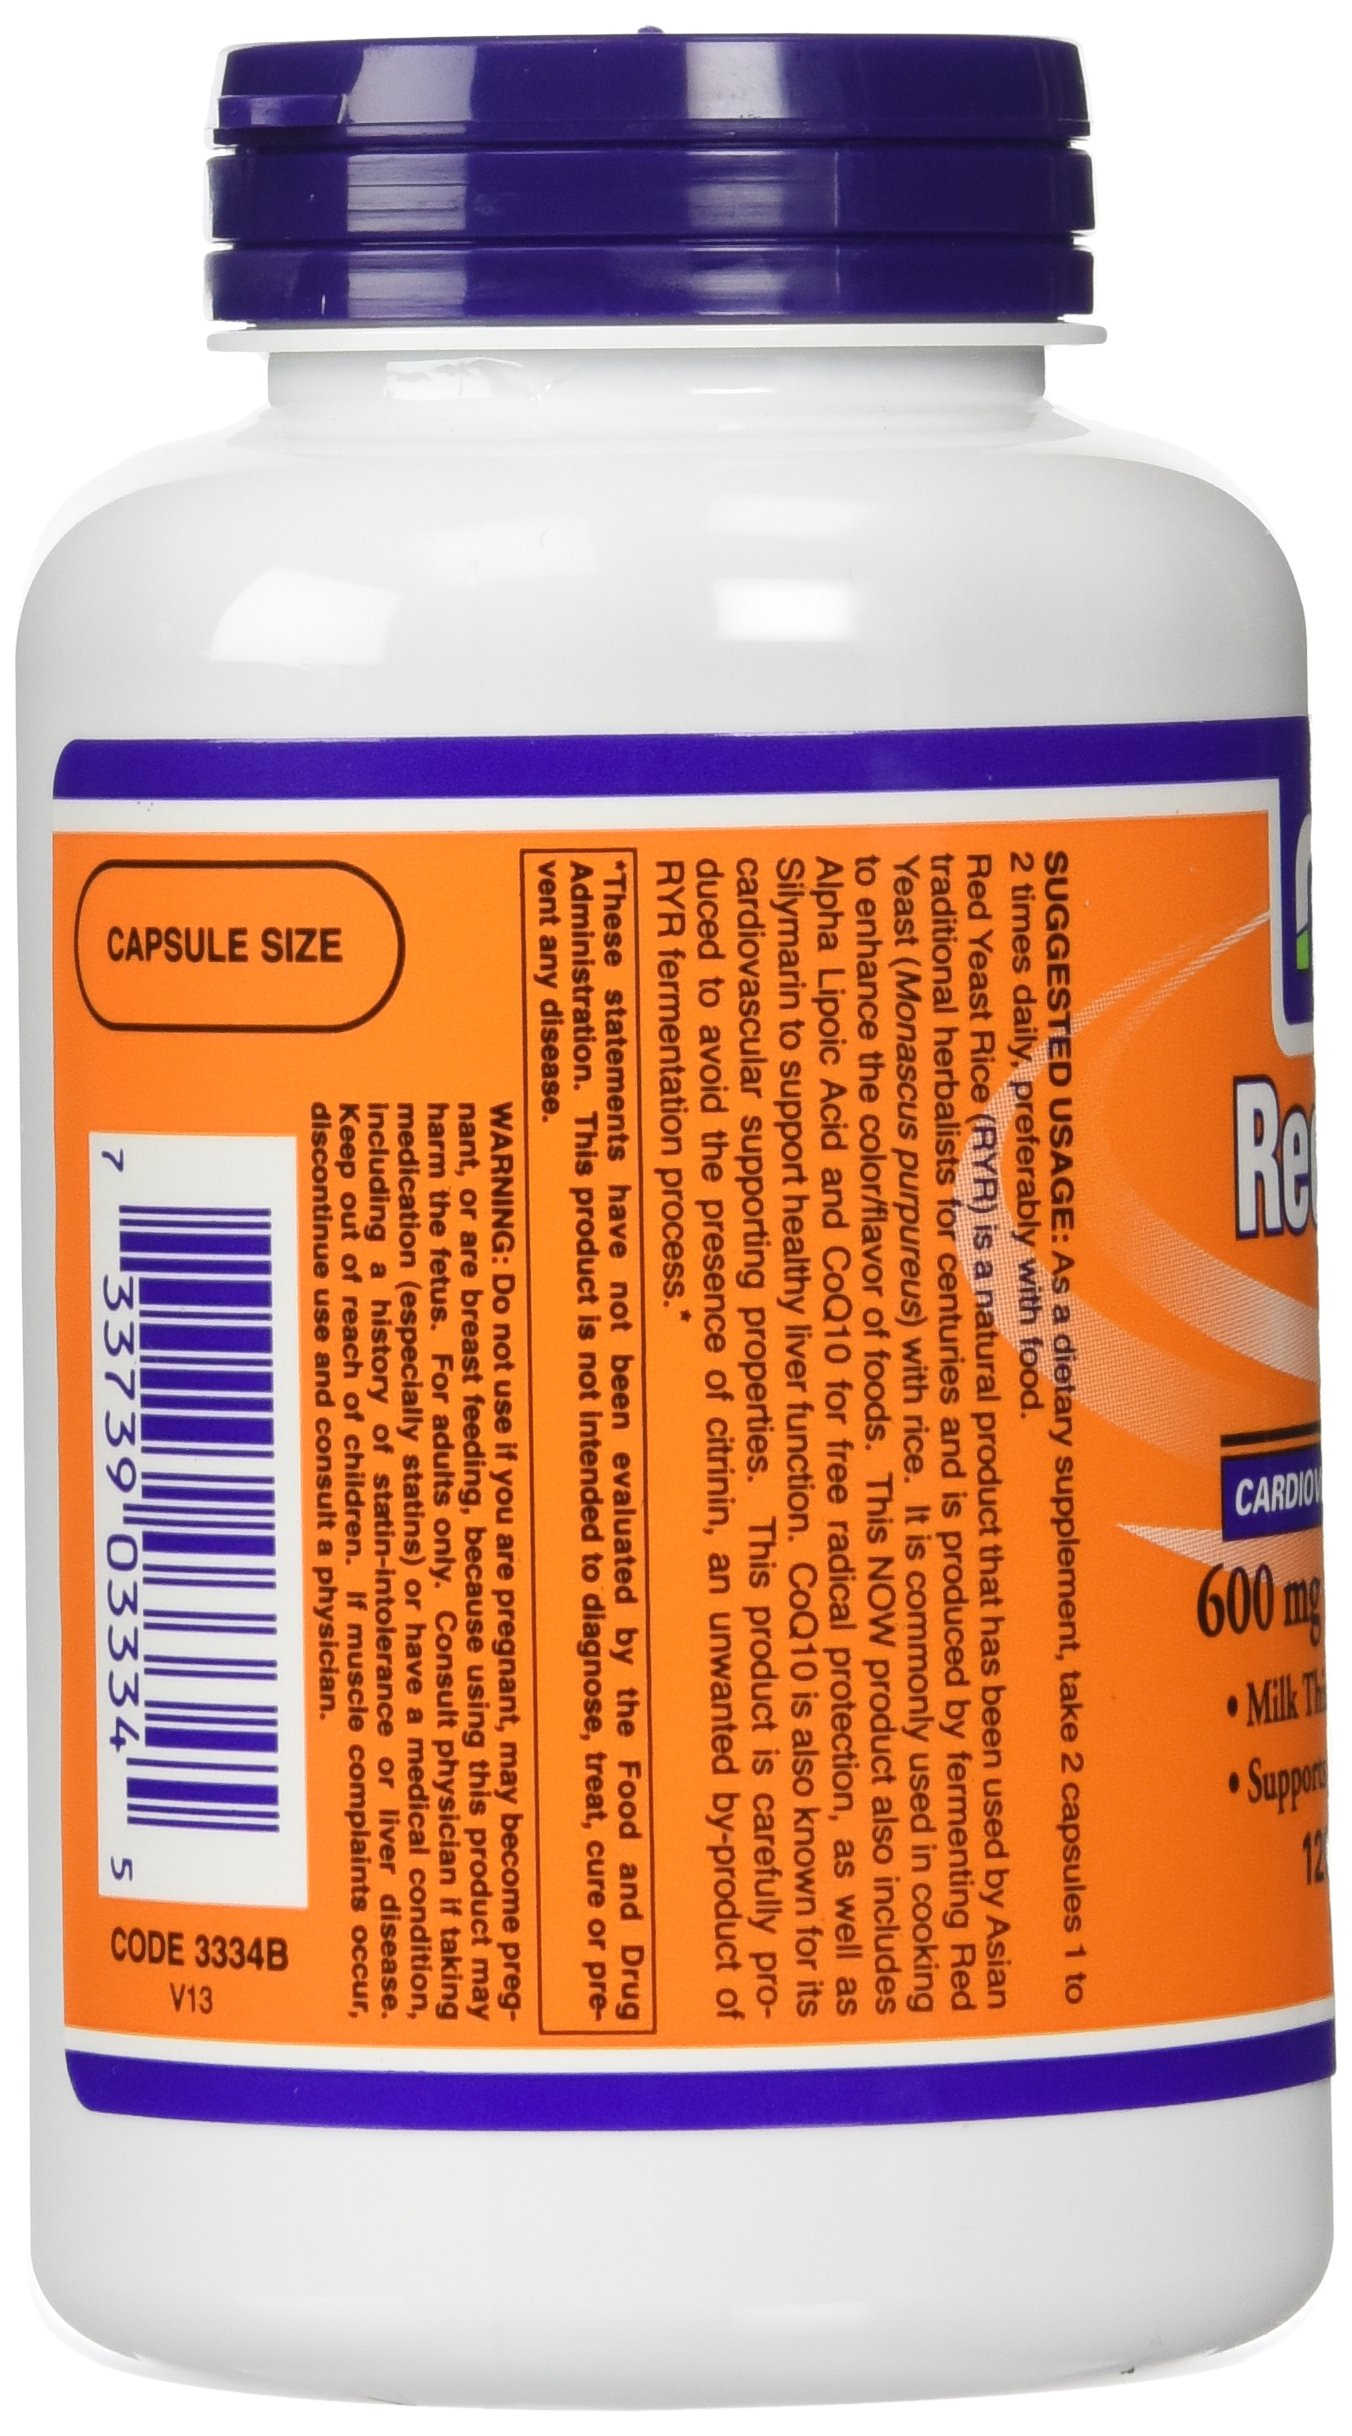 NOW Foods 600mg Red Yeast Rice & 30mg Coq10, 120 caps (pack of 2)